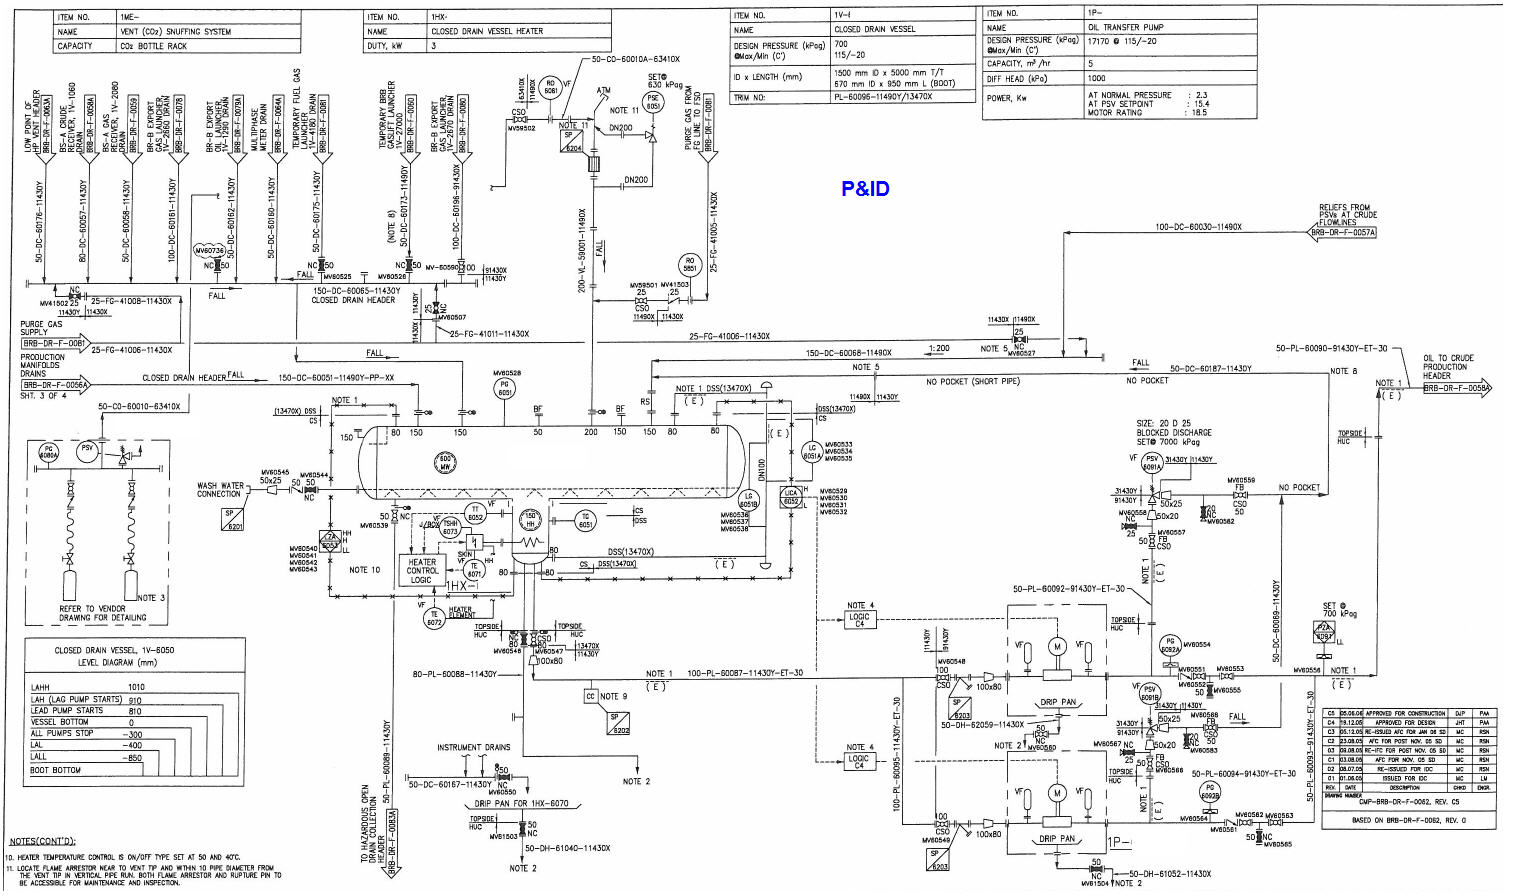 process and instrument diagram piping design rh thepiping com piping and instrumentation diagram of thermal power plant pdf piping and instrumentation diagram of thermal power plant pdf